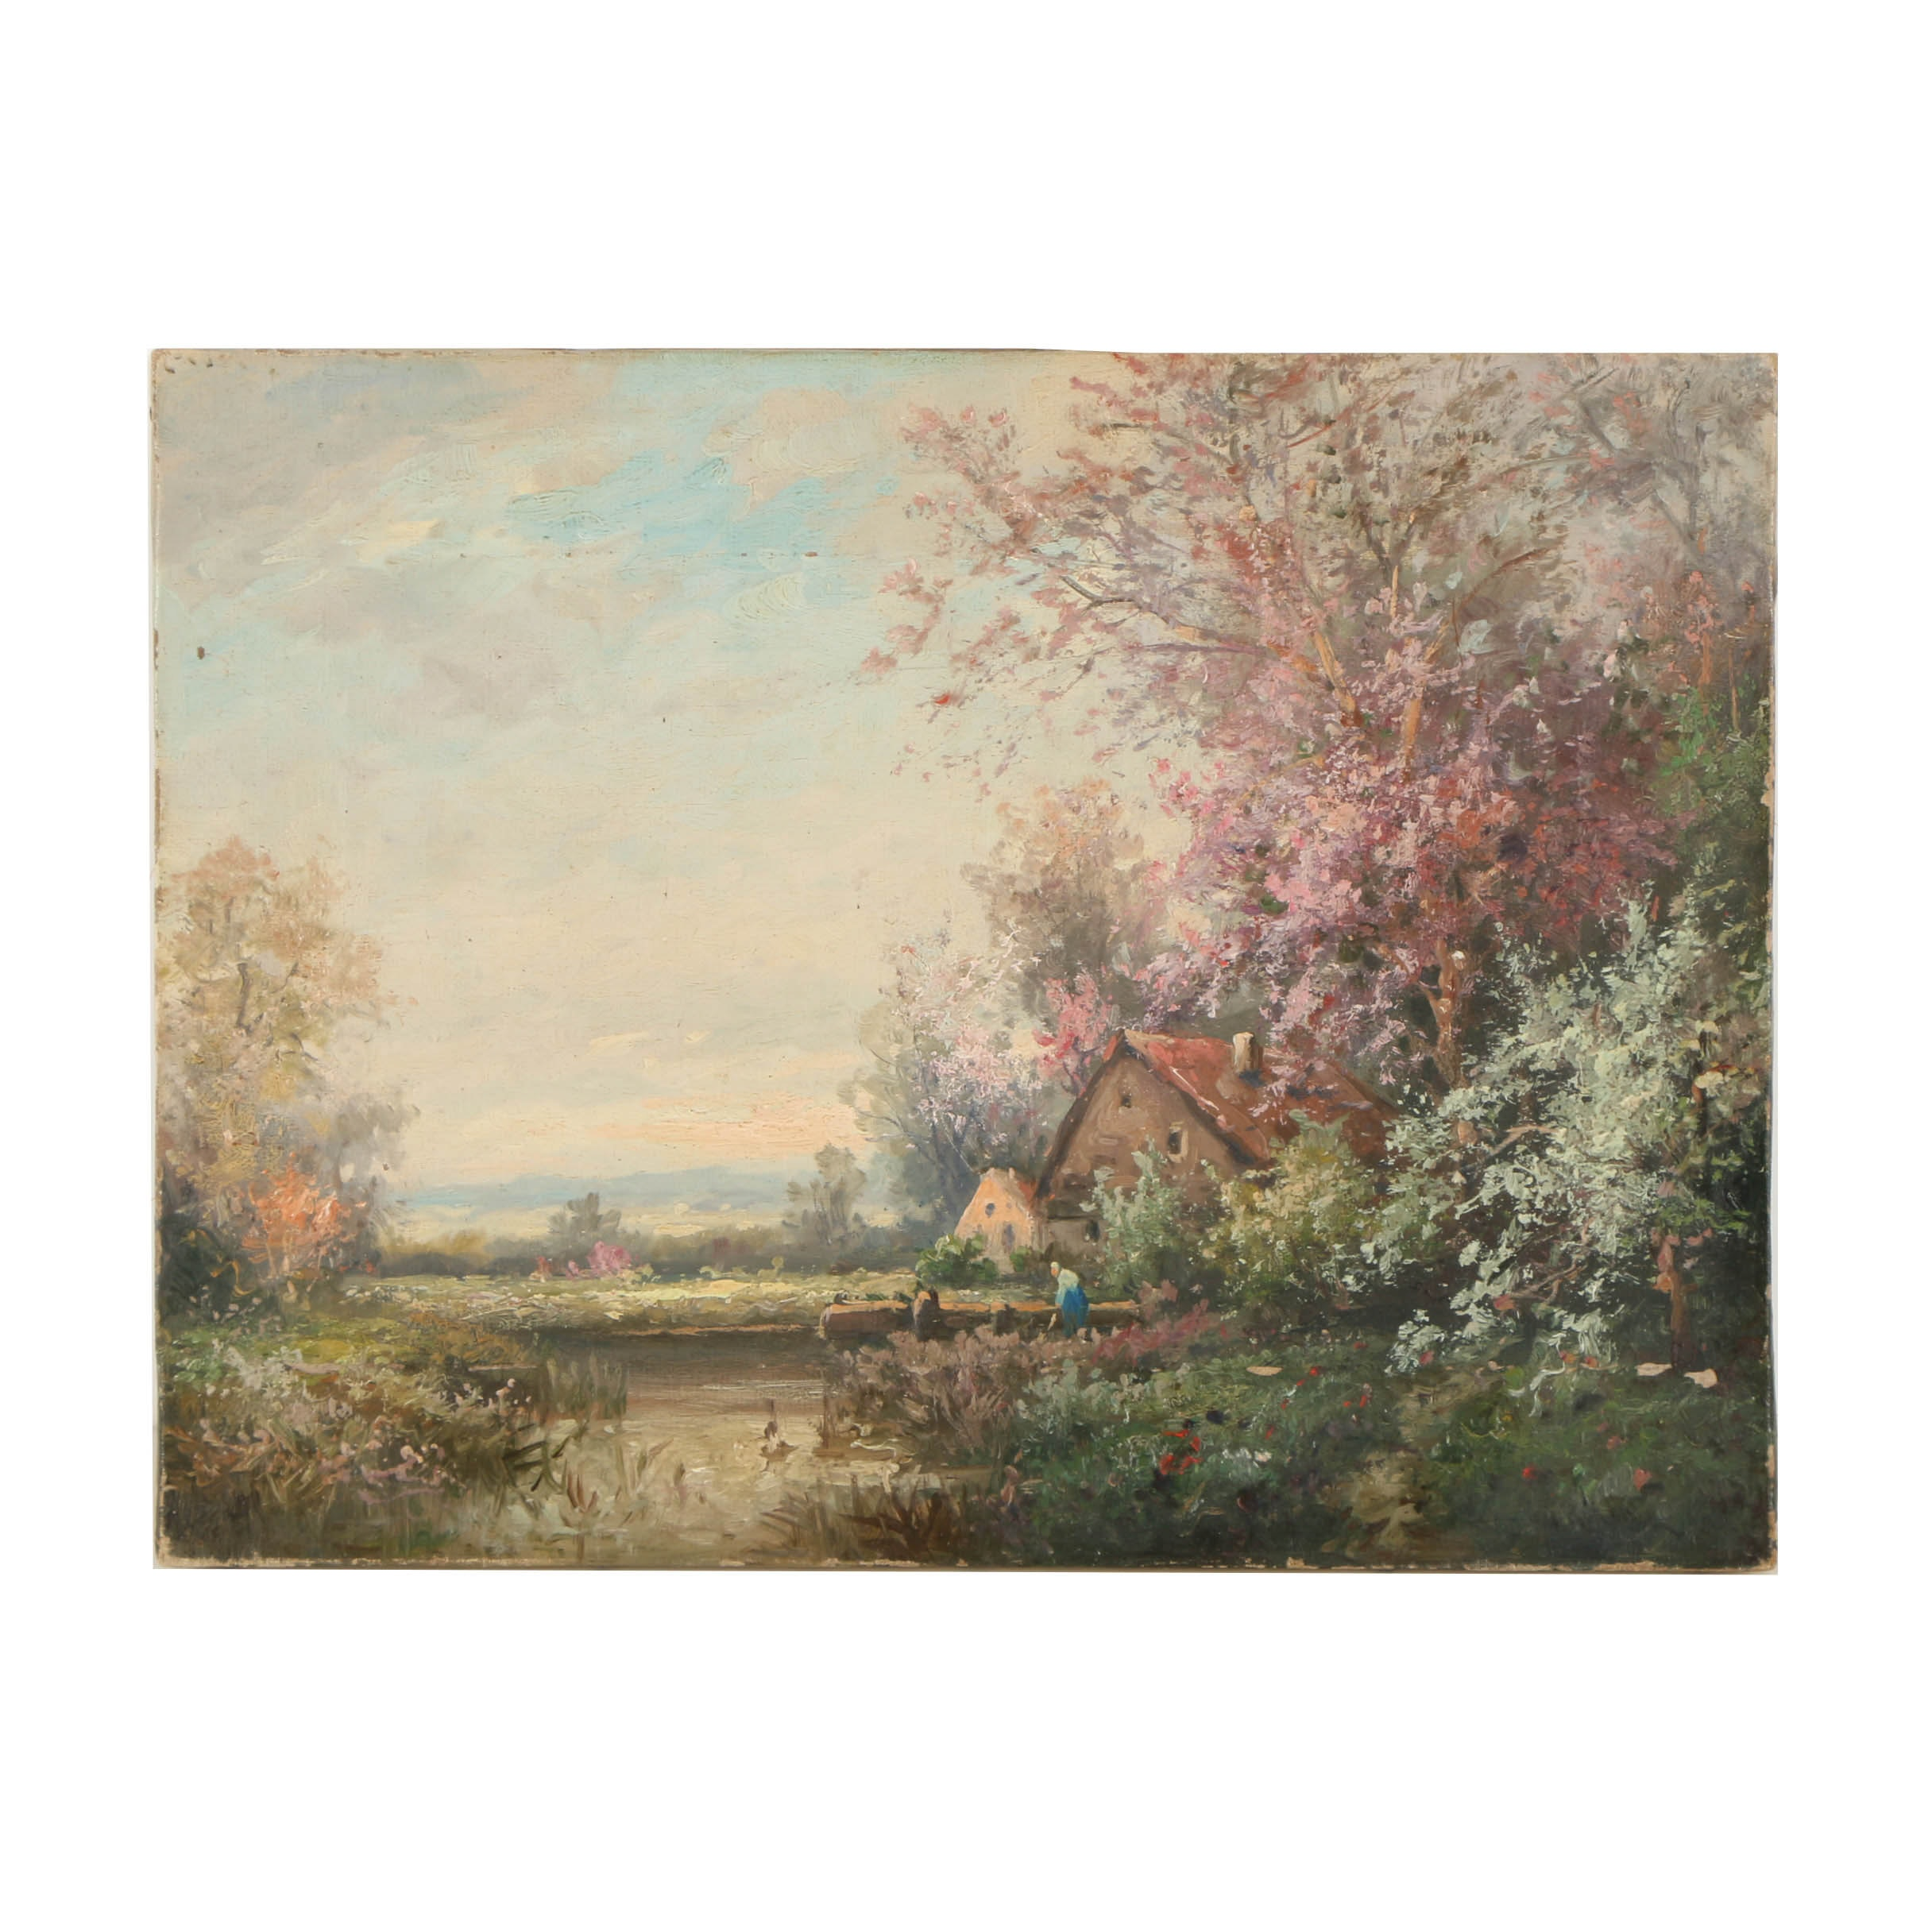 Oil Painting on Canvas of a Rural Landscape